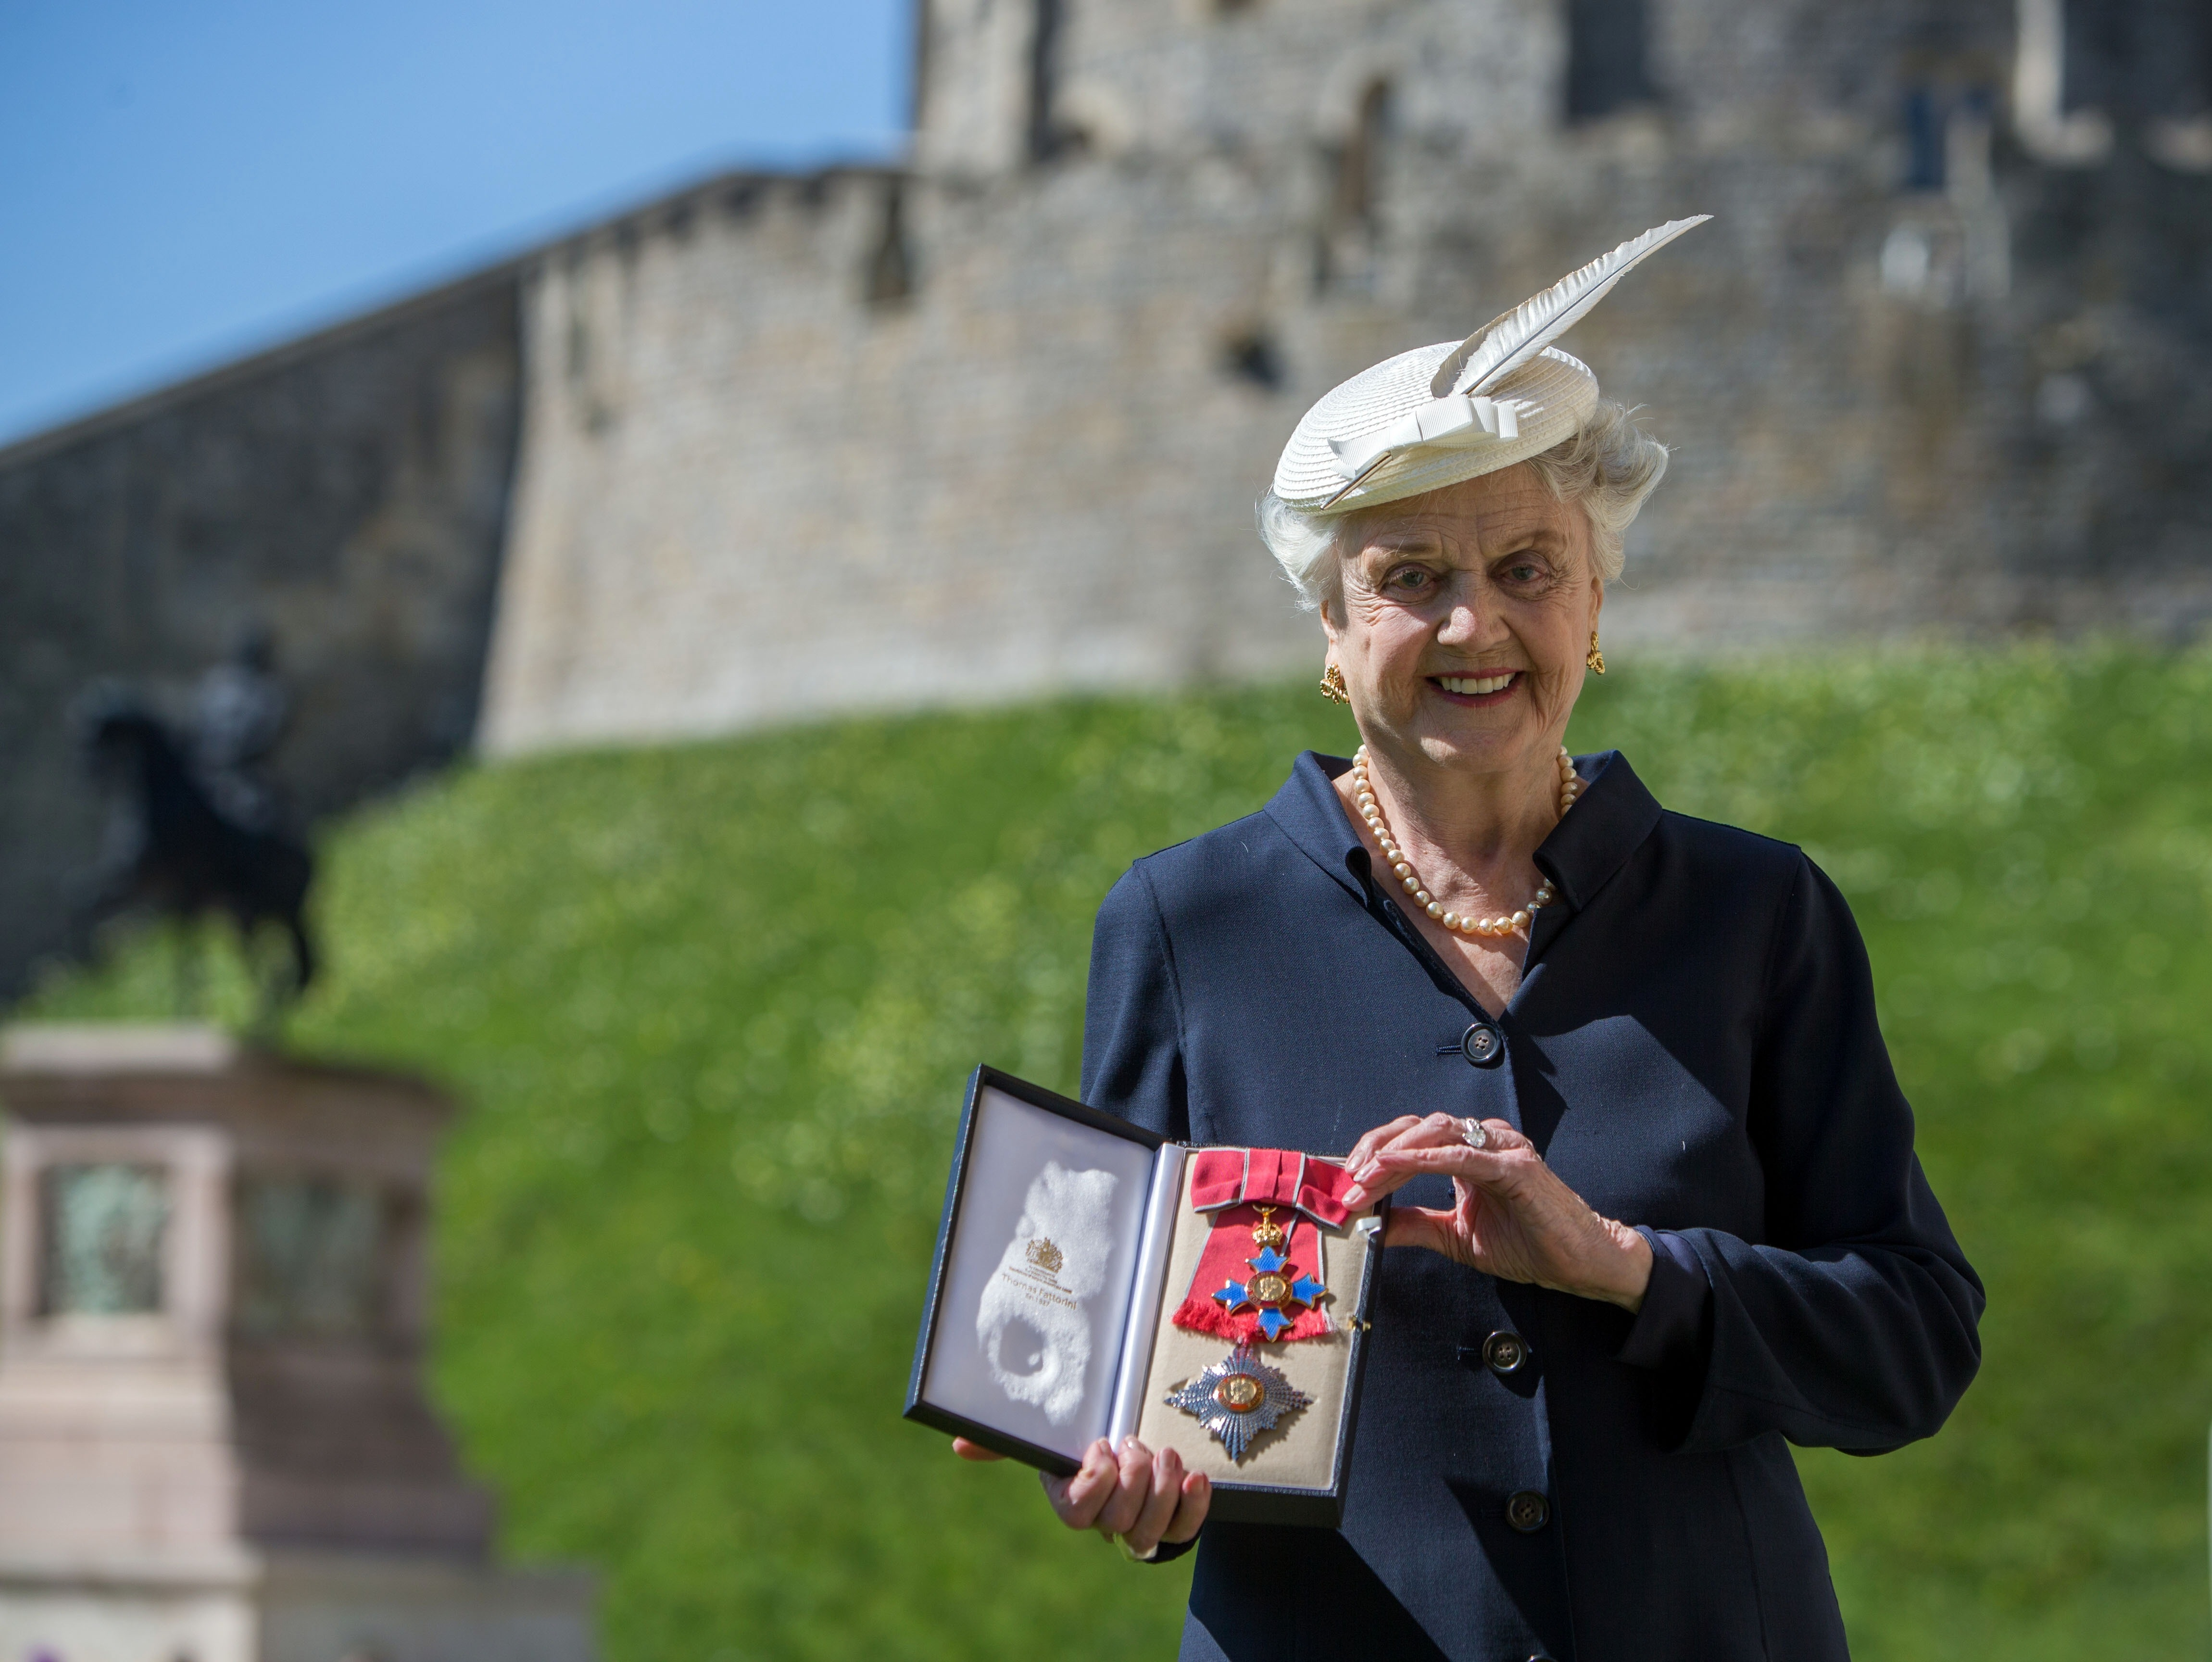 One heck of a dame: Actress Angela Lansbury poses with her Dame Commander medal given to her by Queen Elizabeth II at an Investiture ceremony at Windsor Castle on Tuesday.